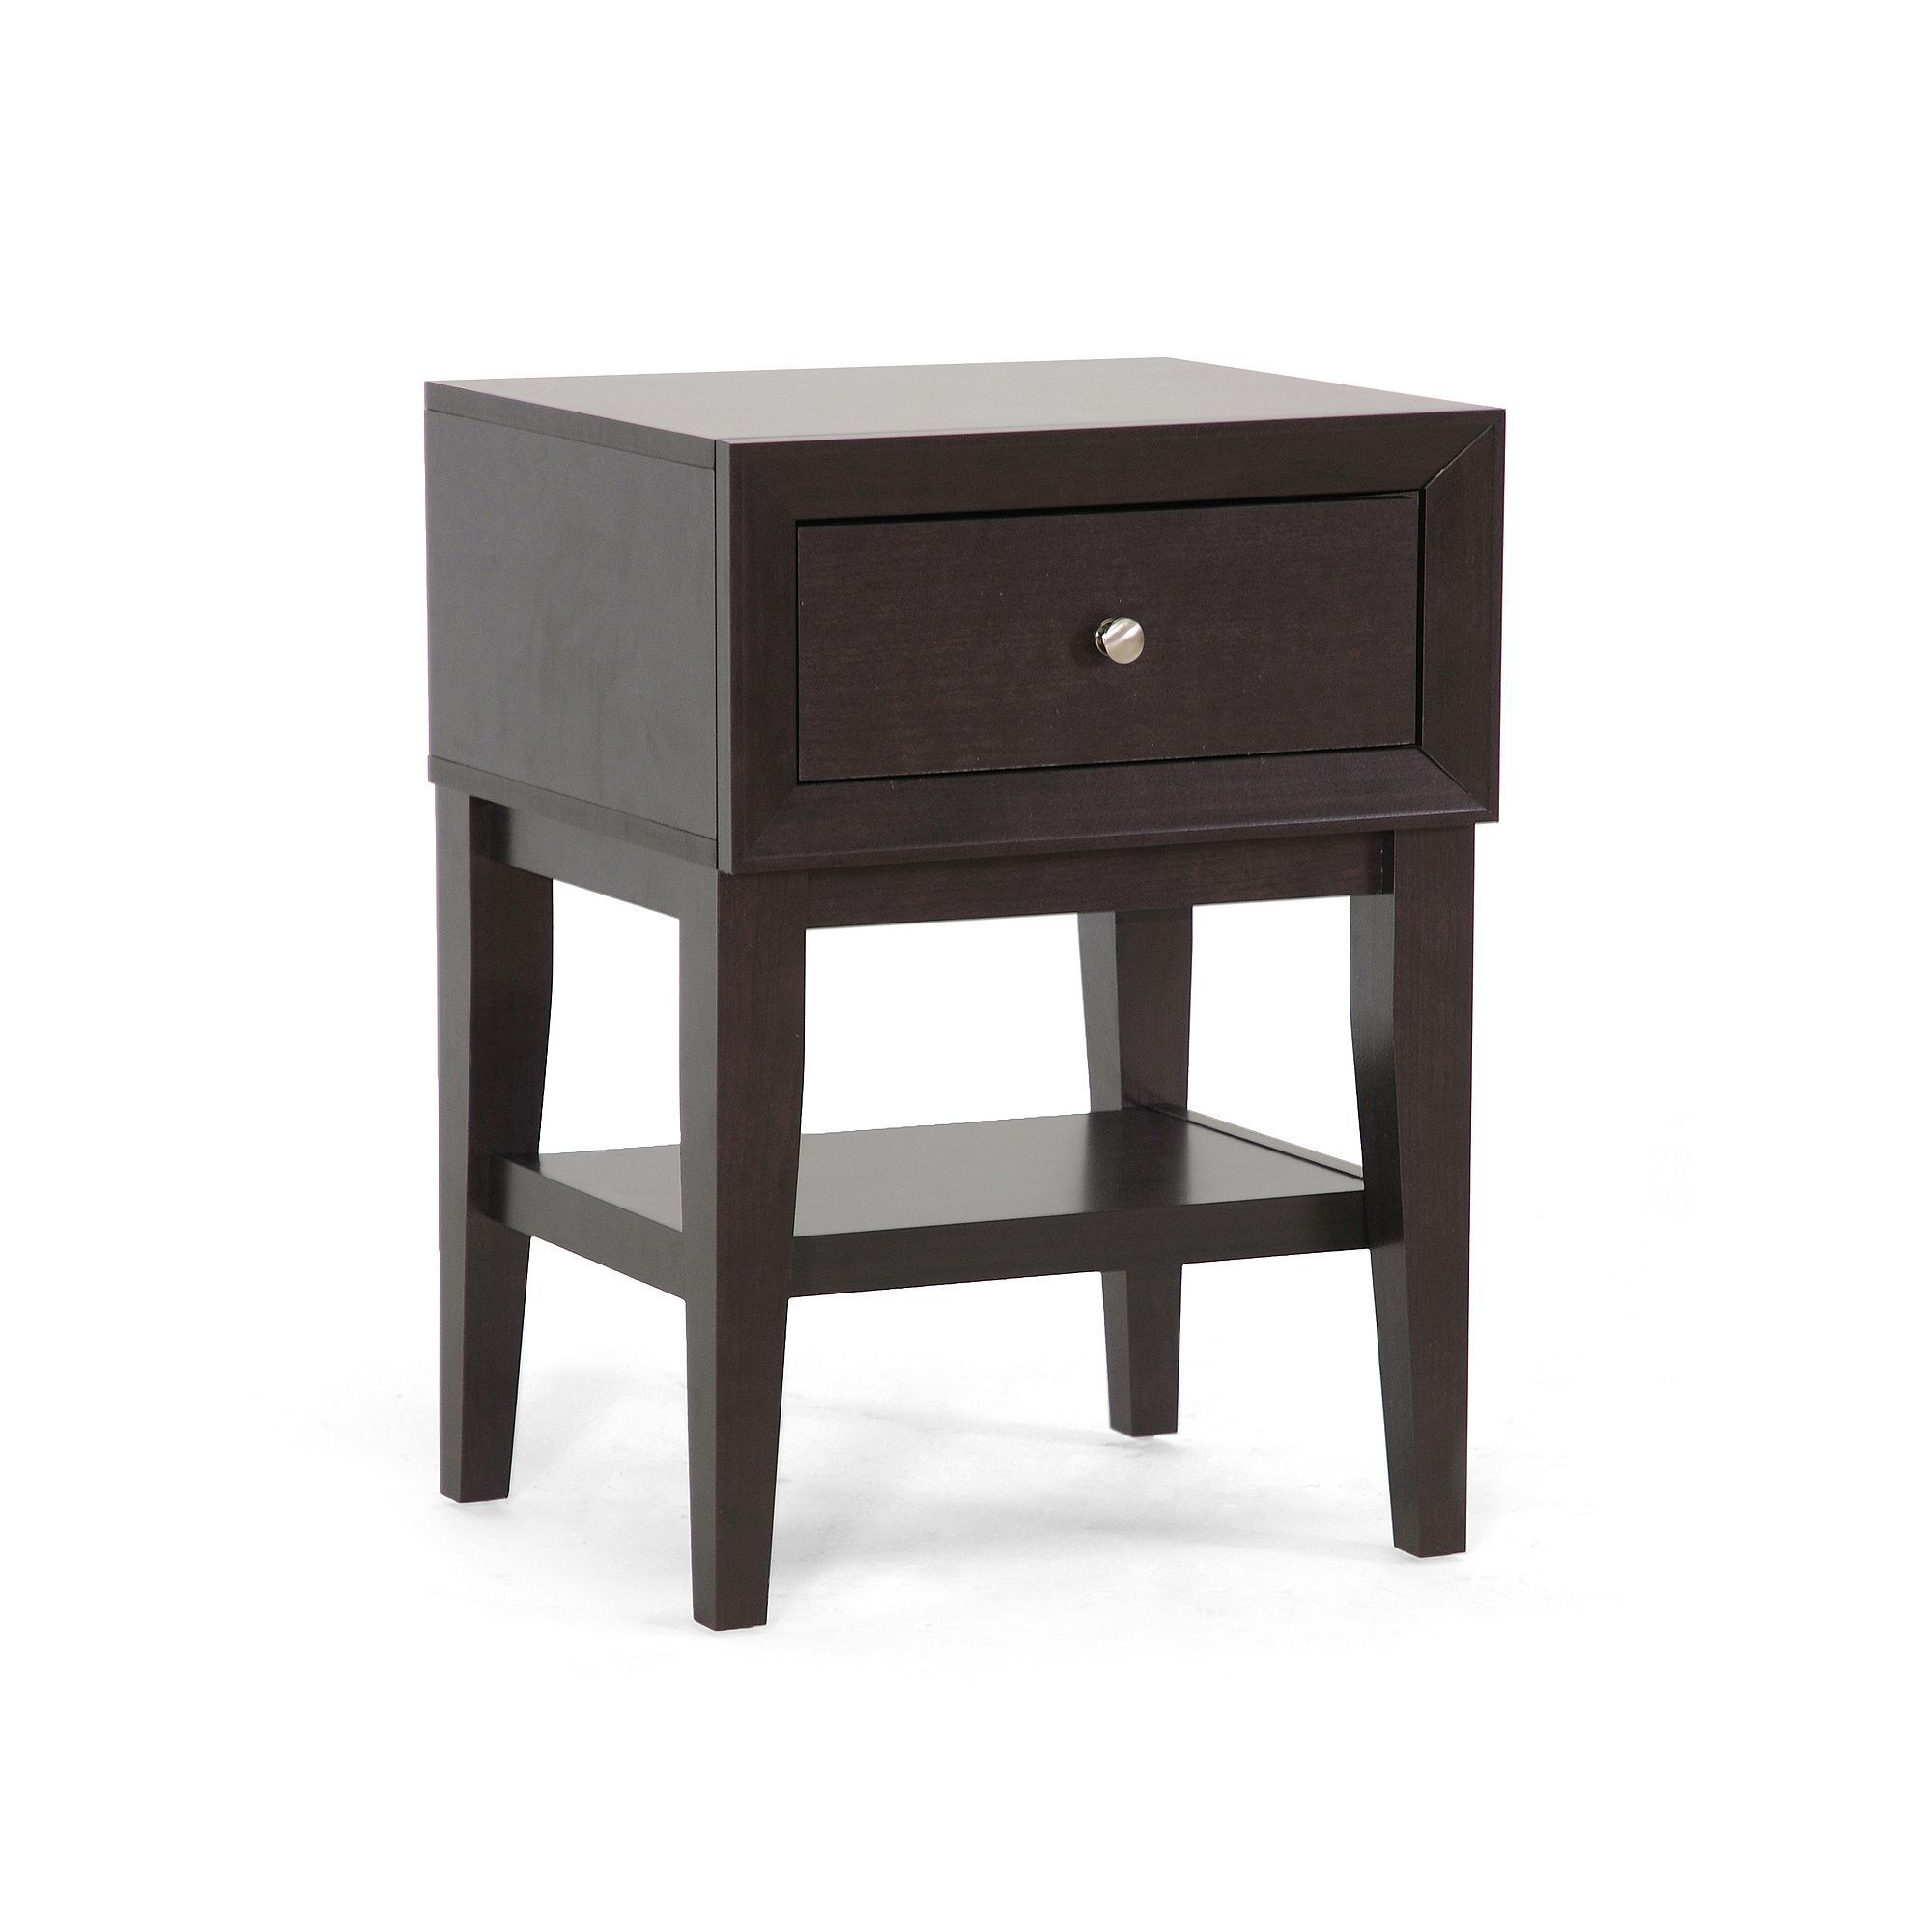 baxton studio gaston accent table brown products winsome squamish with drawer espresso finish legs nesting cocktail tables gray wash coffee wooden dining chairs target entry